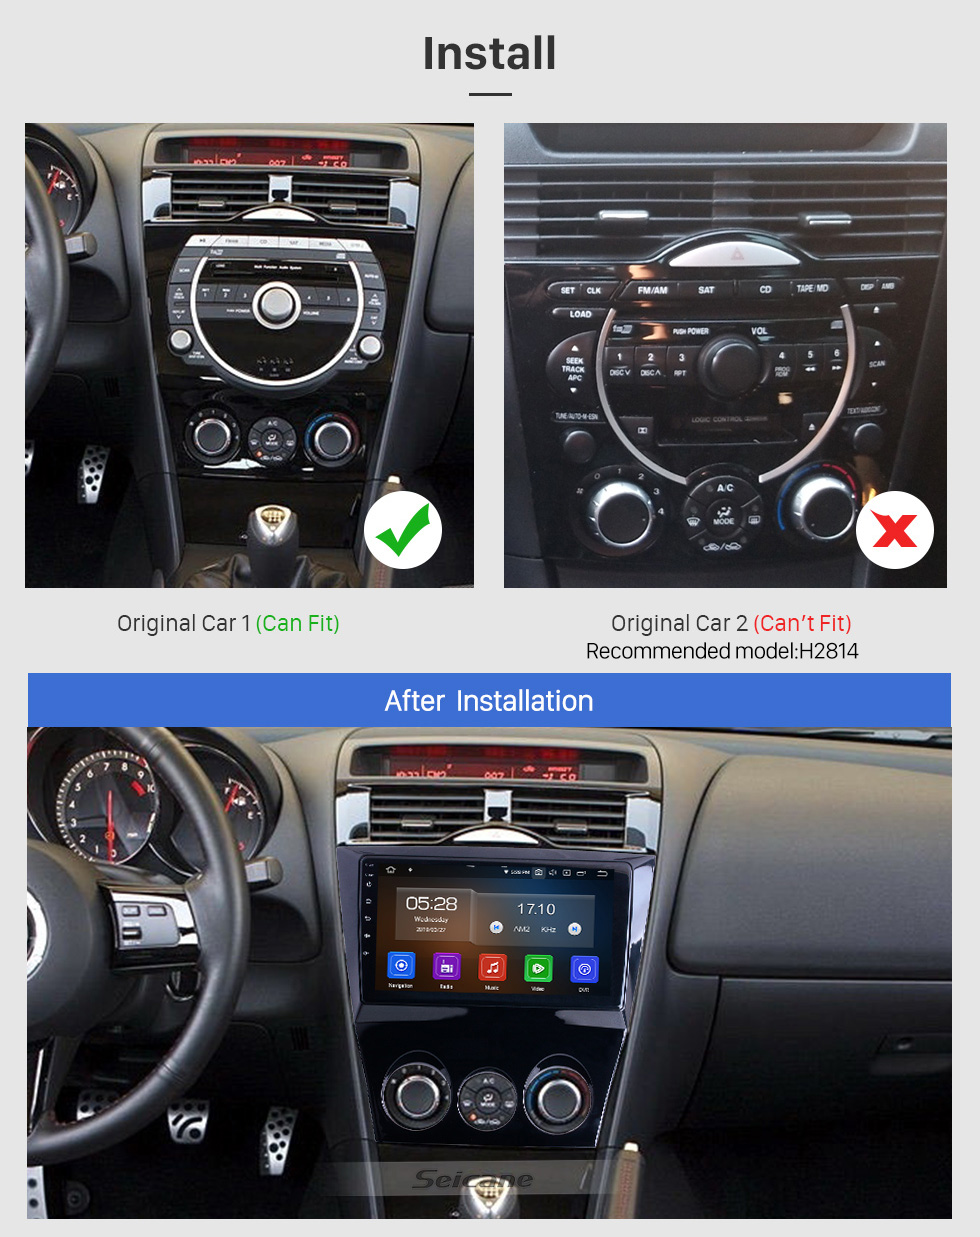 Seicane 9 inch For 2011 Mazda RX8 Radio Android 10.0 GPS Navigation System with Bluetooth HD Touchscreen Carplay support Digital TV